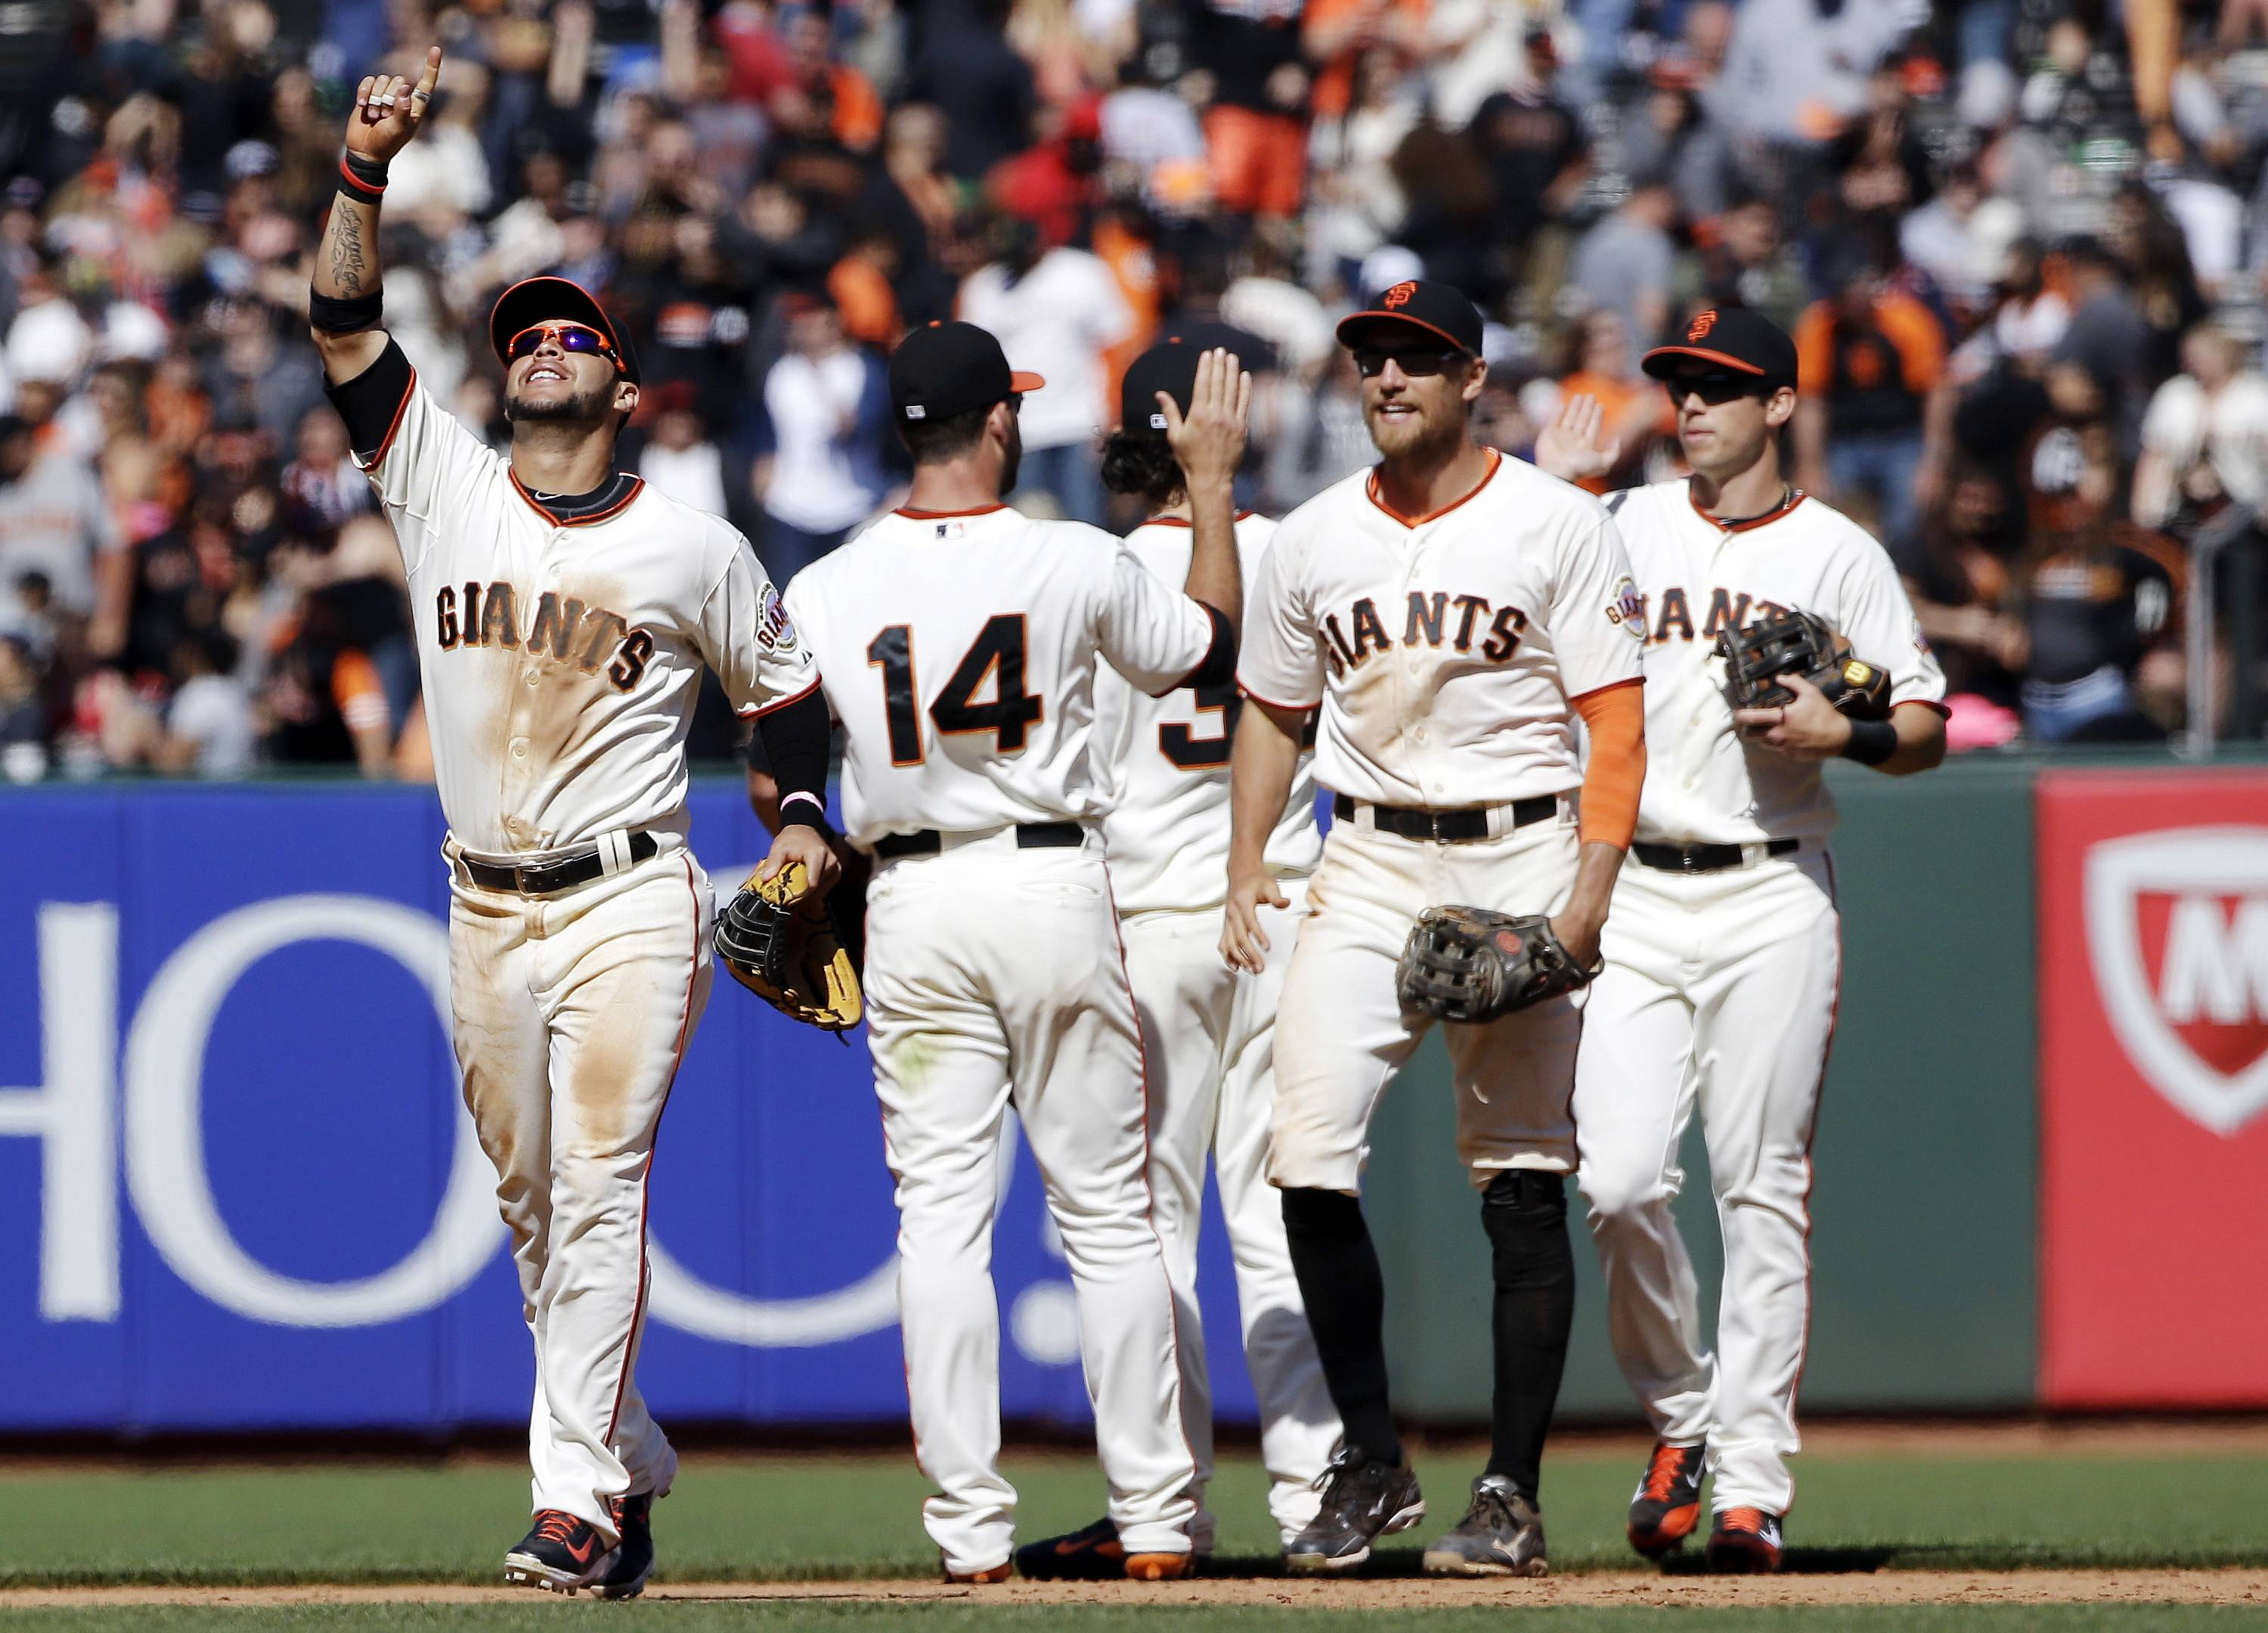 FILE - In this May 18, 2014, file photo, from left, San Francisco Giants' Gregor Blanco, Brandon Hicks (14), Hunter Pence and Tyler Colvin celebrate a 4-1 win over the Miami Marlins in a baseball game in San Francisco. The small-budget Athletics are baseball's best team at the break in a division featuring some of the highest-paid stars. The Giants are right in the chase for the NL West crown despite some recent stumbles. It's only mid-July and there is already talk of a special October and, perhaps, a Bay Bridge Series with far more significance come fall.